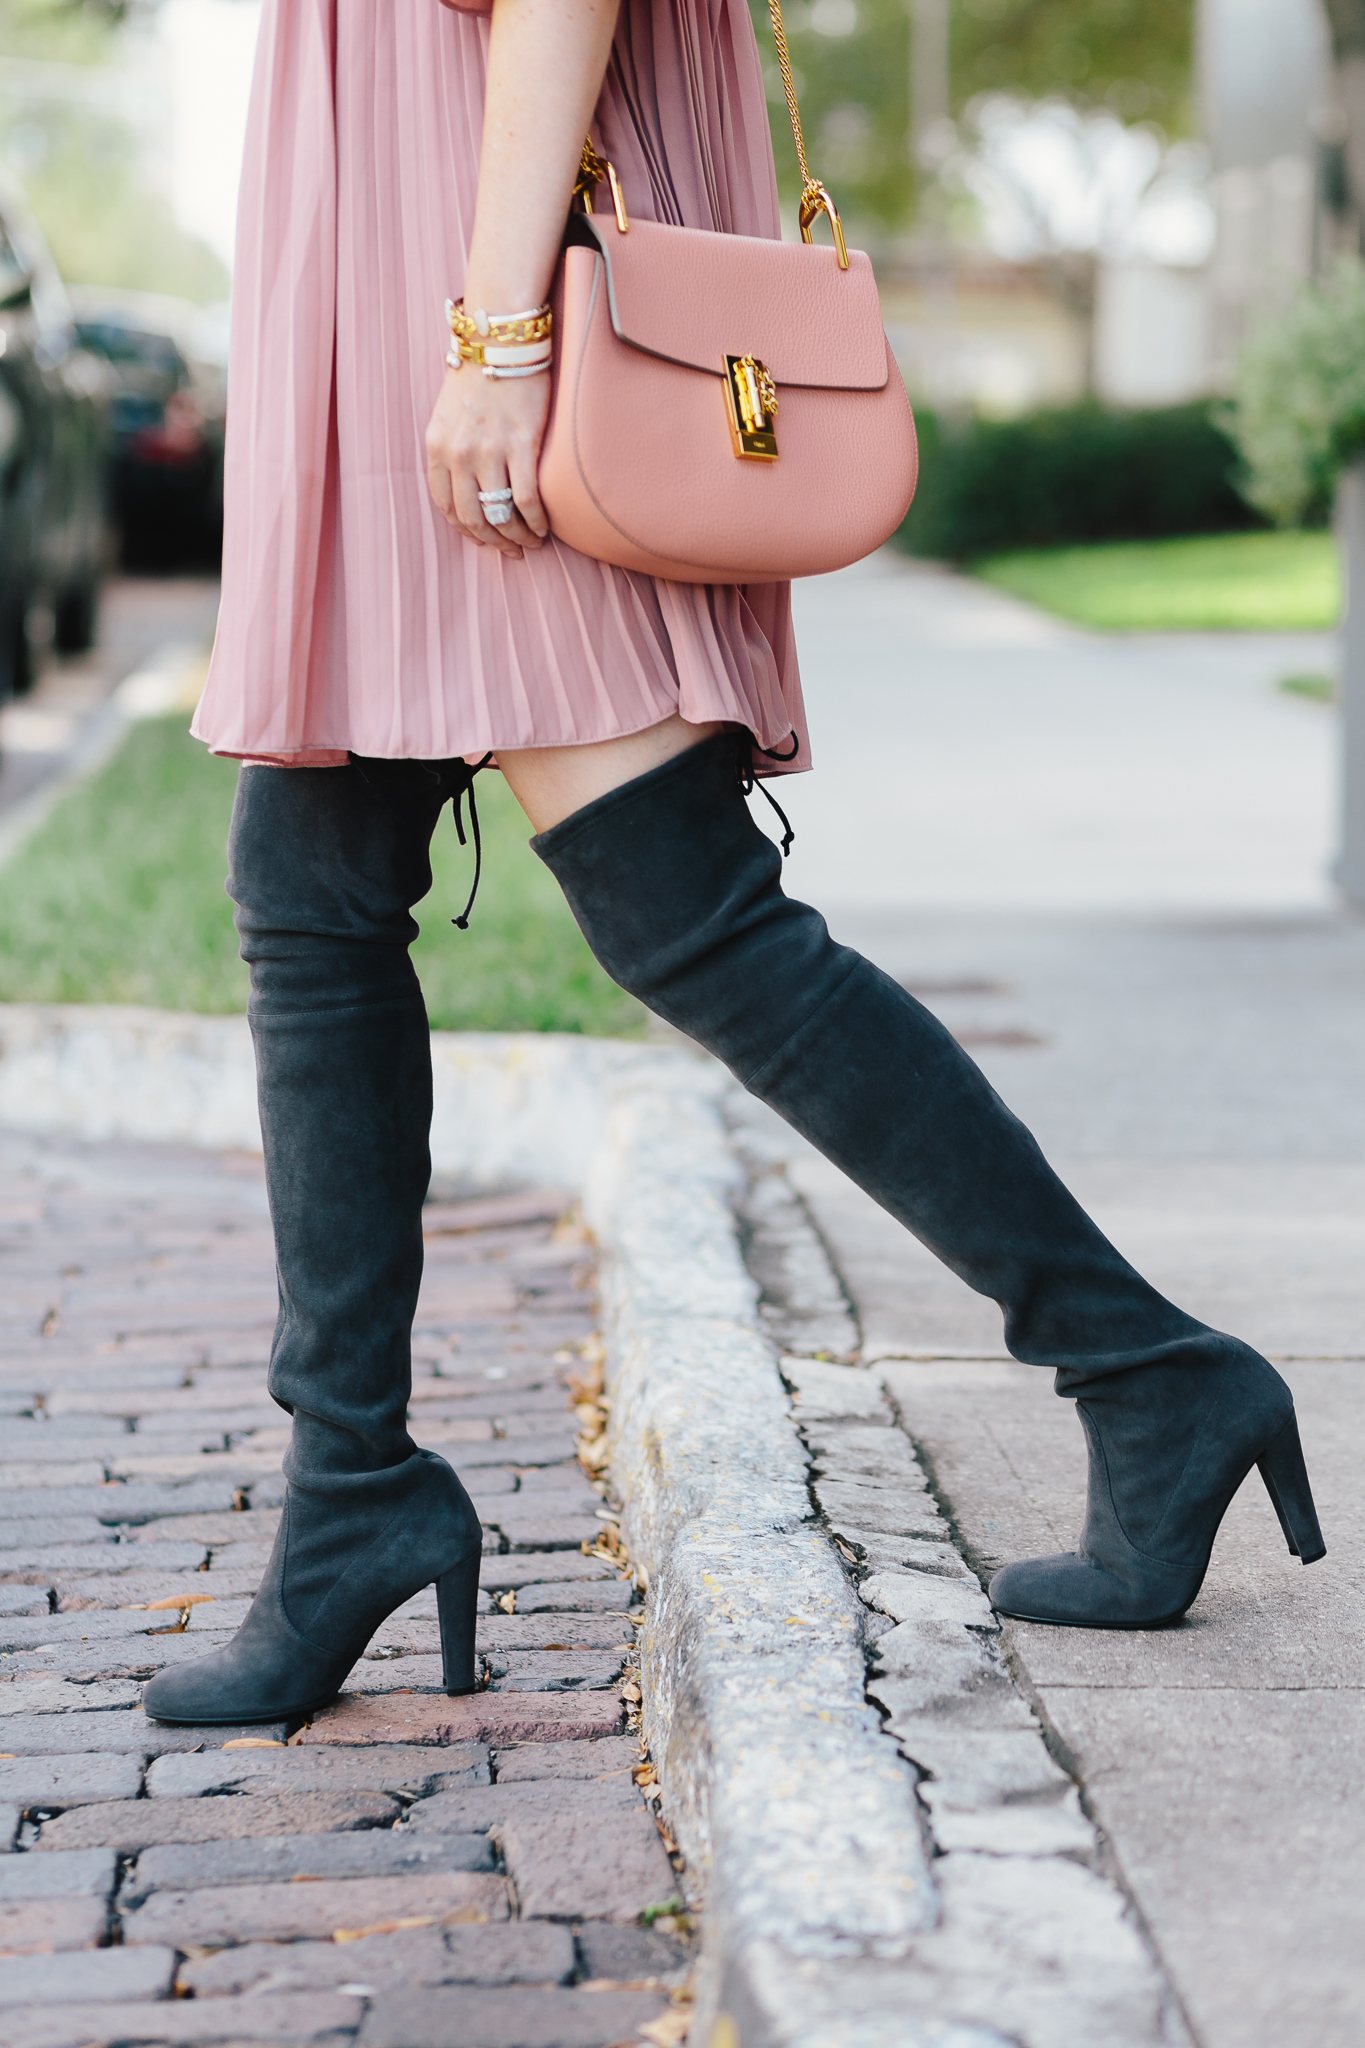 How to wear OTK boots with dresses| otk boots, Stuart weitzman highland, Stuart weitzman boots, Stuart weitzman hiline boots, asos dress, blush and suede, blush dress, Chloe drew, Chloe drew bag, pink and grey outfit, fall outfit, dress with otk boots, over the knee boots, ruffle dress, fall fashion